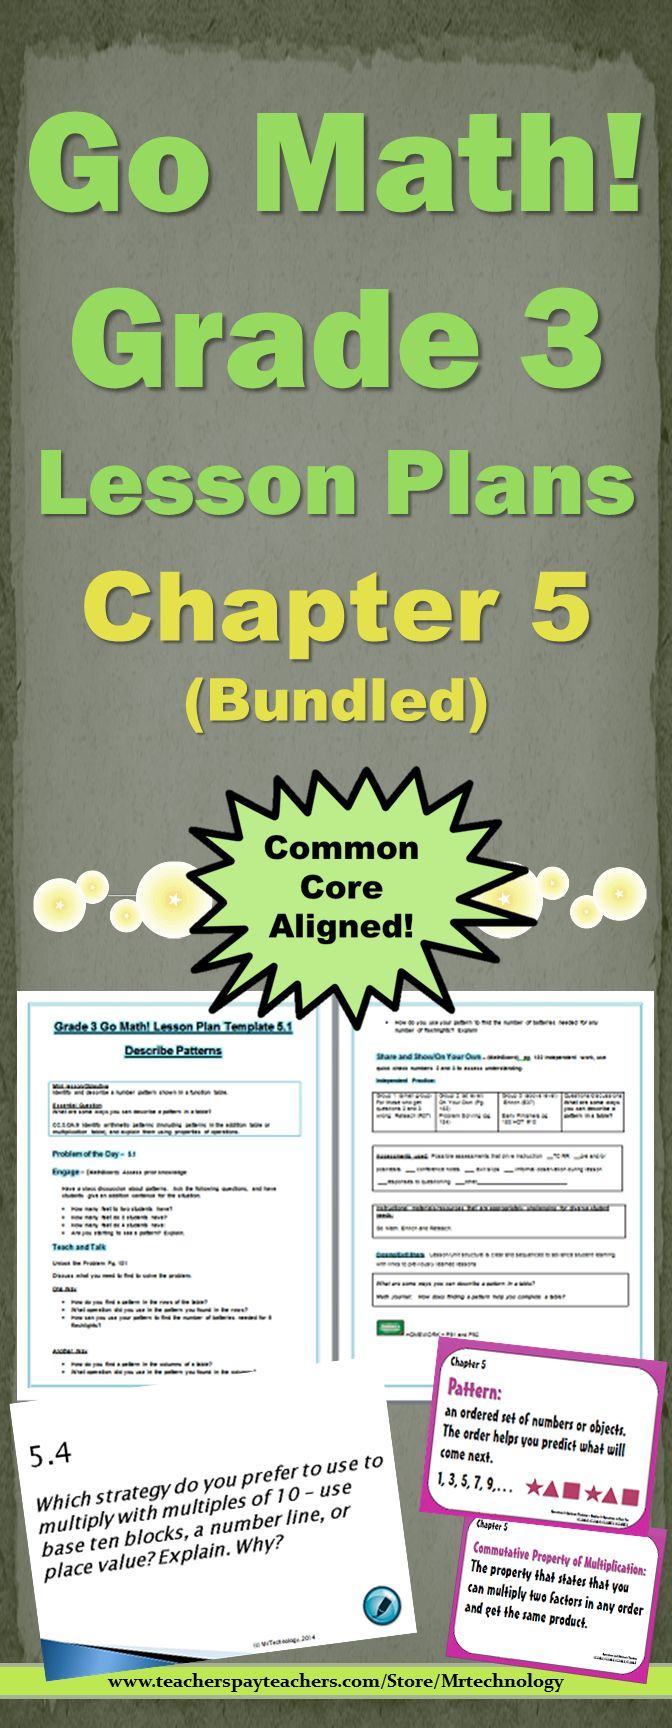 Go Math Grade 3 Chapter 5 Lesson Plans 5155 (bundled)  To Be, Multiplication Strategies And